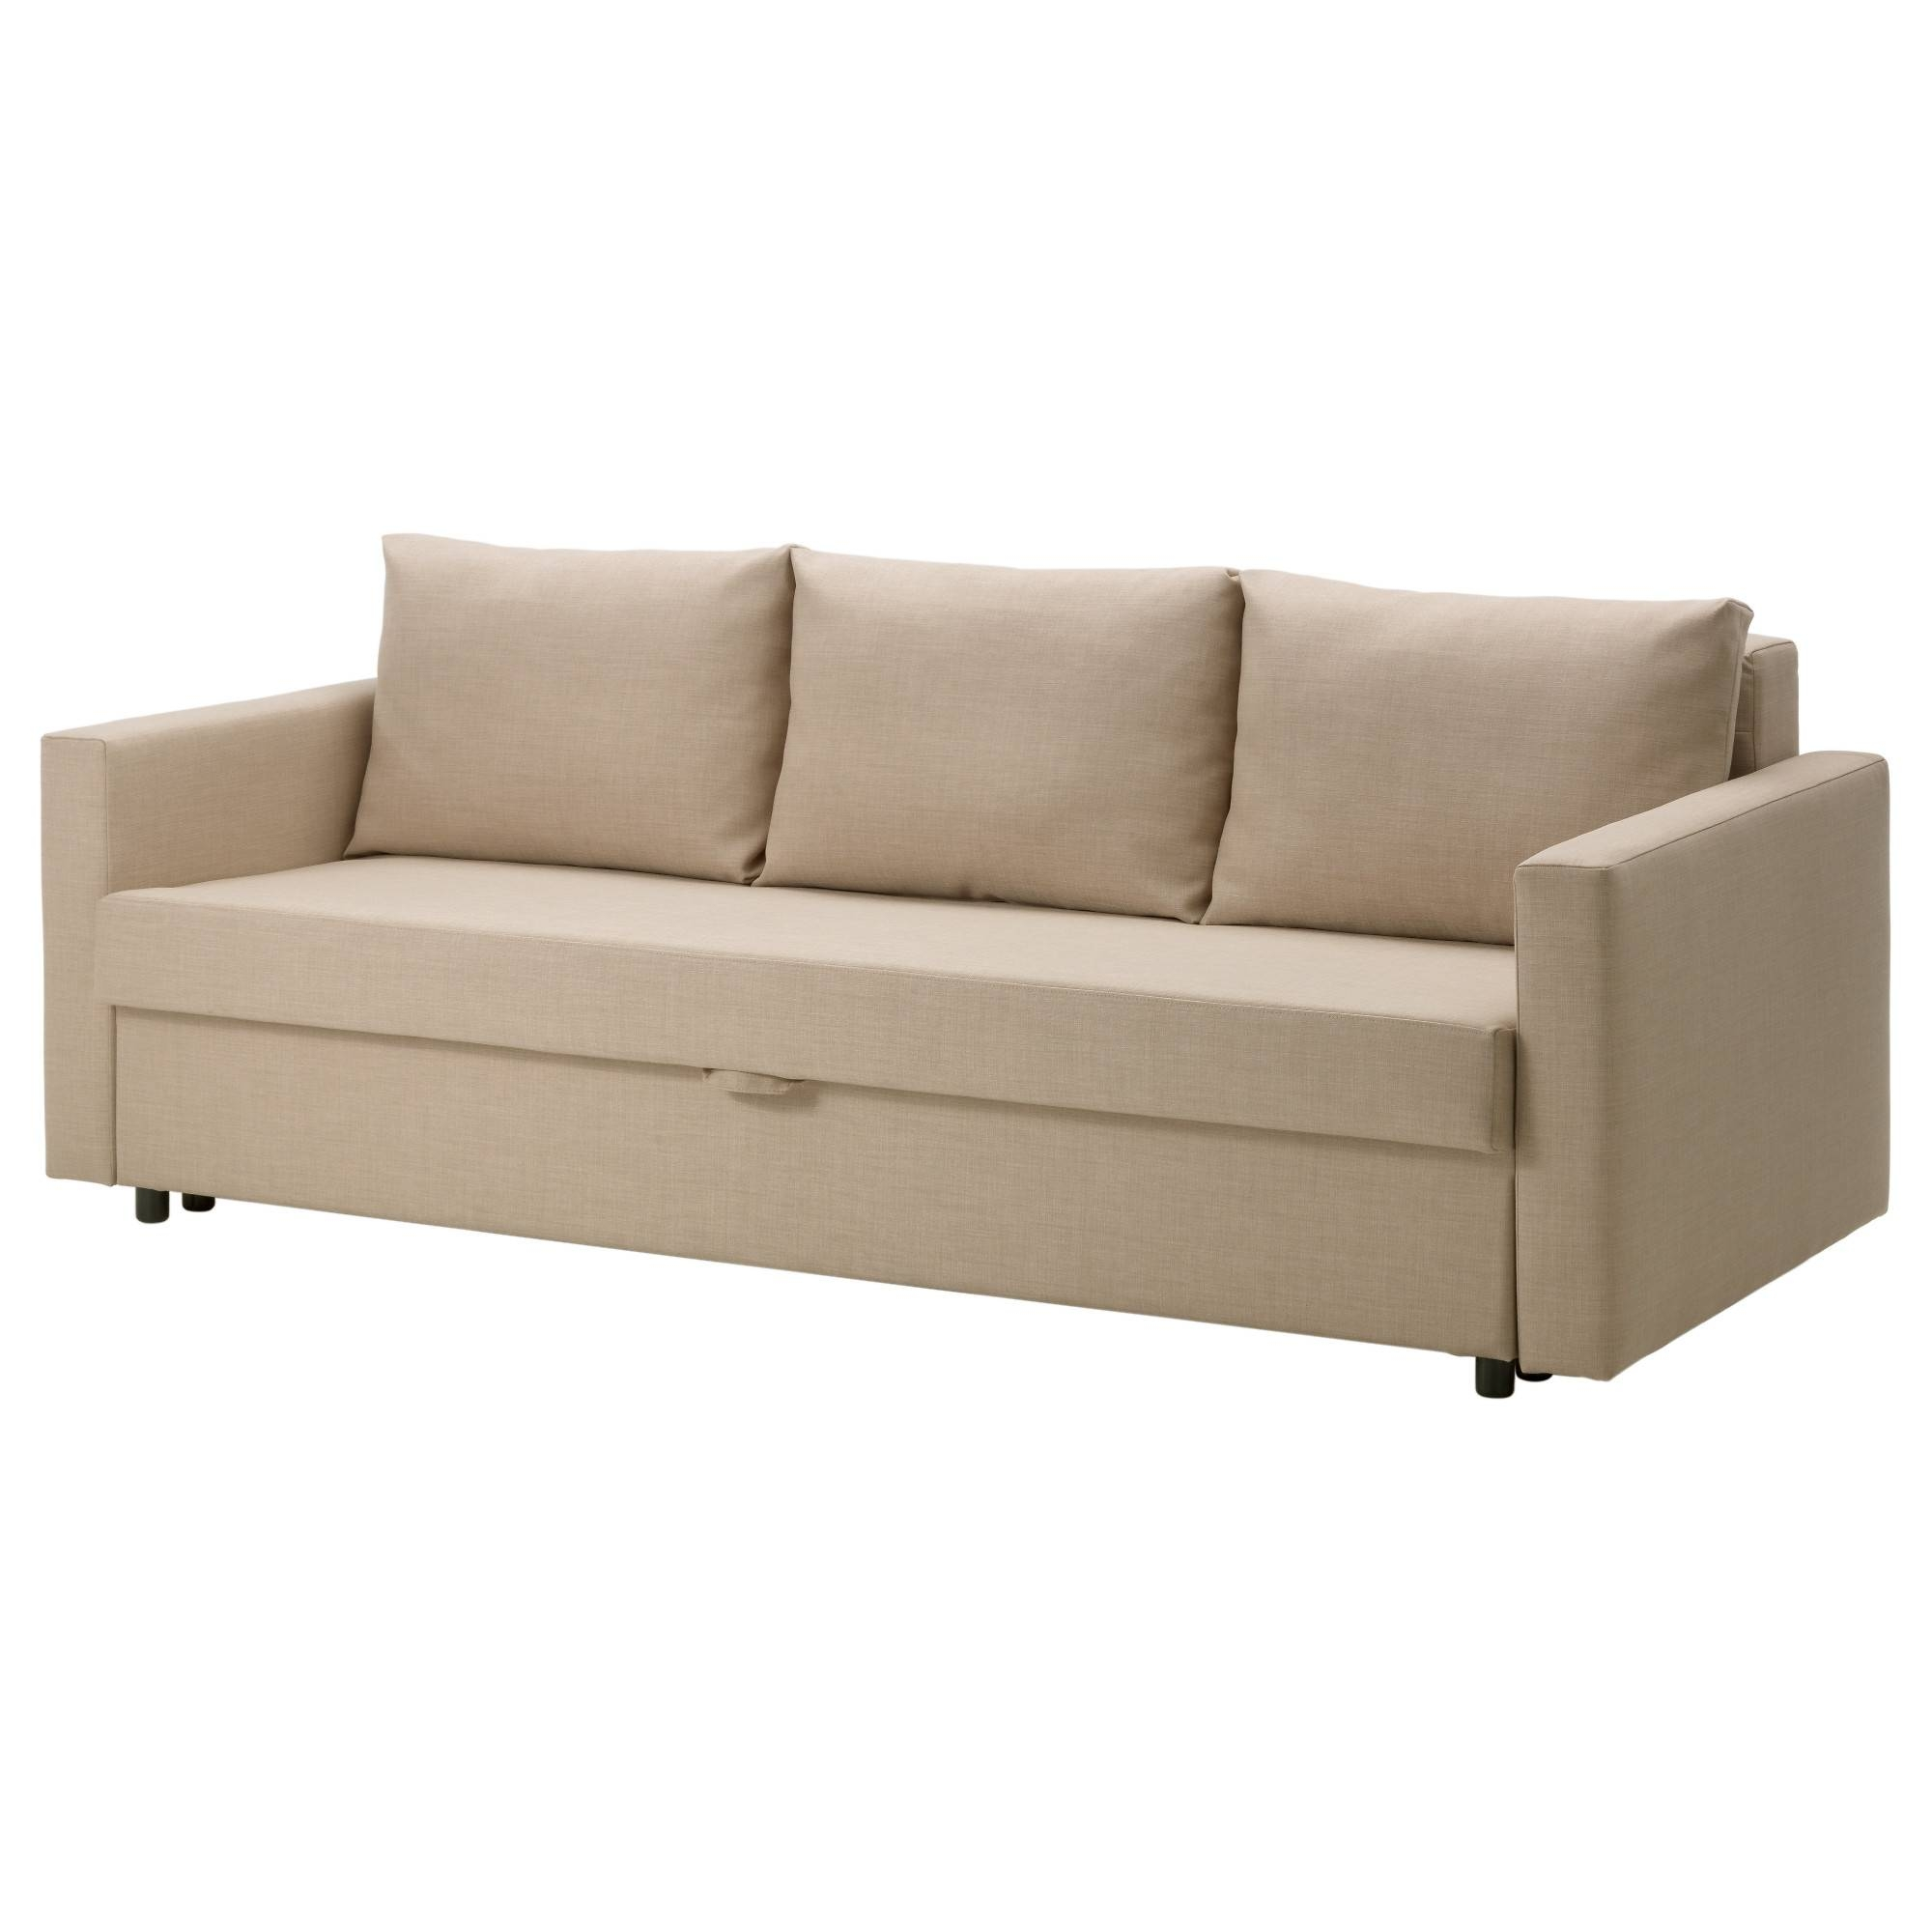 Loveseat Pull Out Bed Ikea | Bed Furniture Decoration with regard to Pull Out Queen Size Bed Sofas (Image 15 of 30)